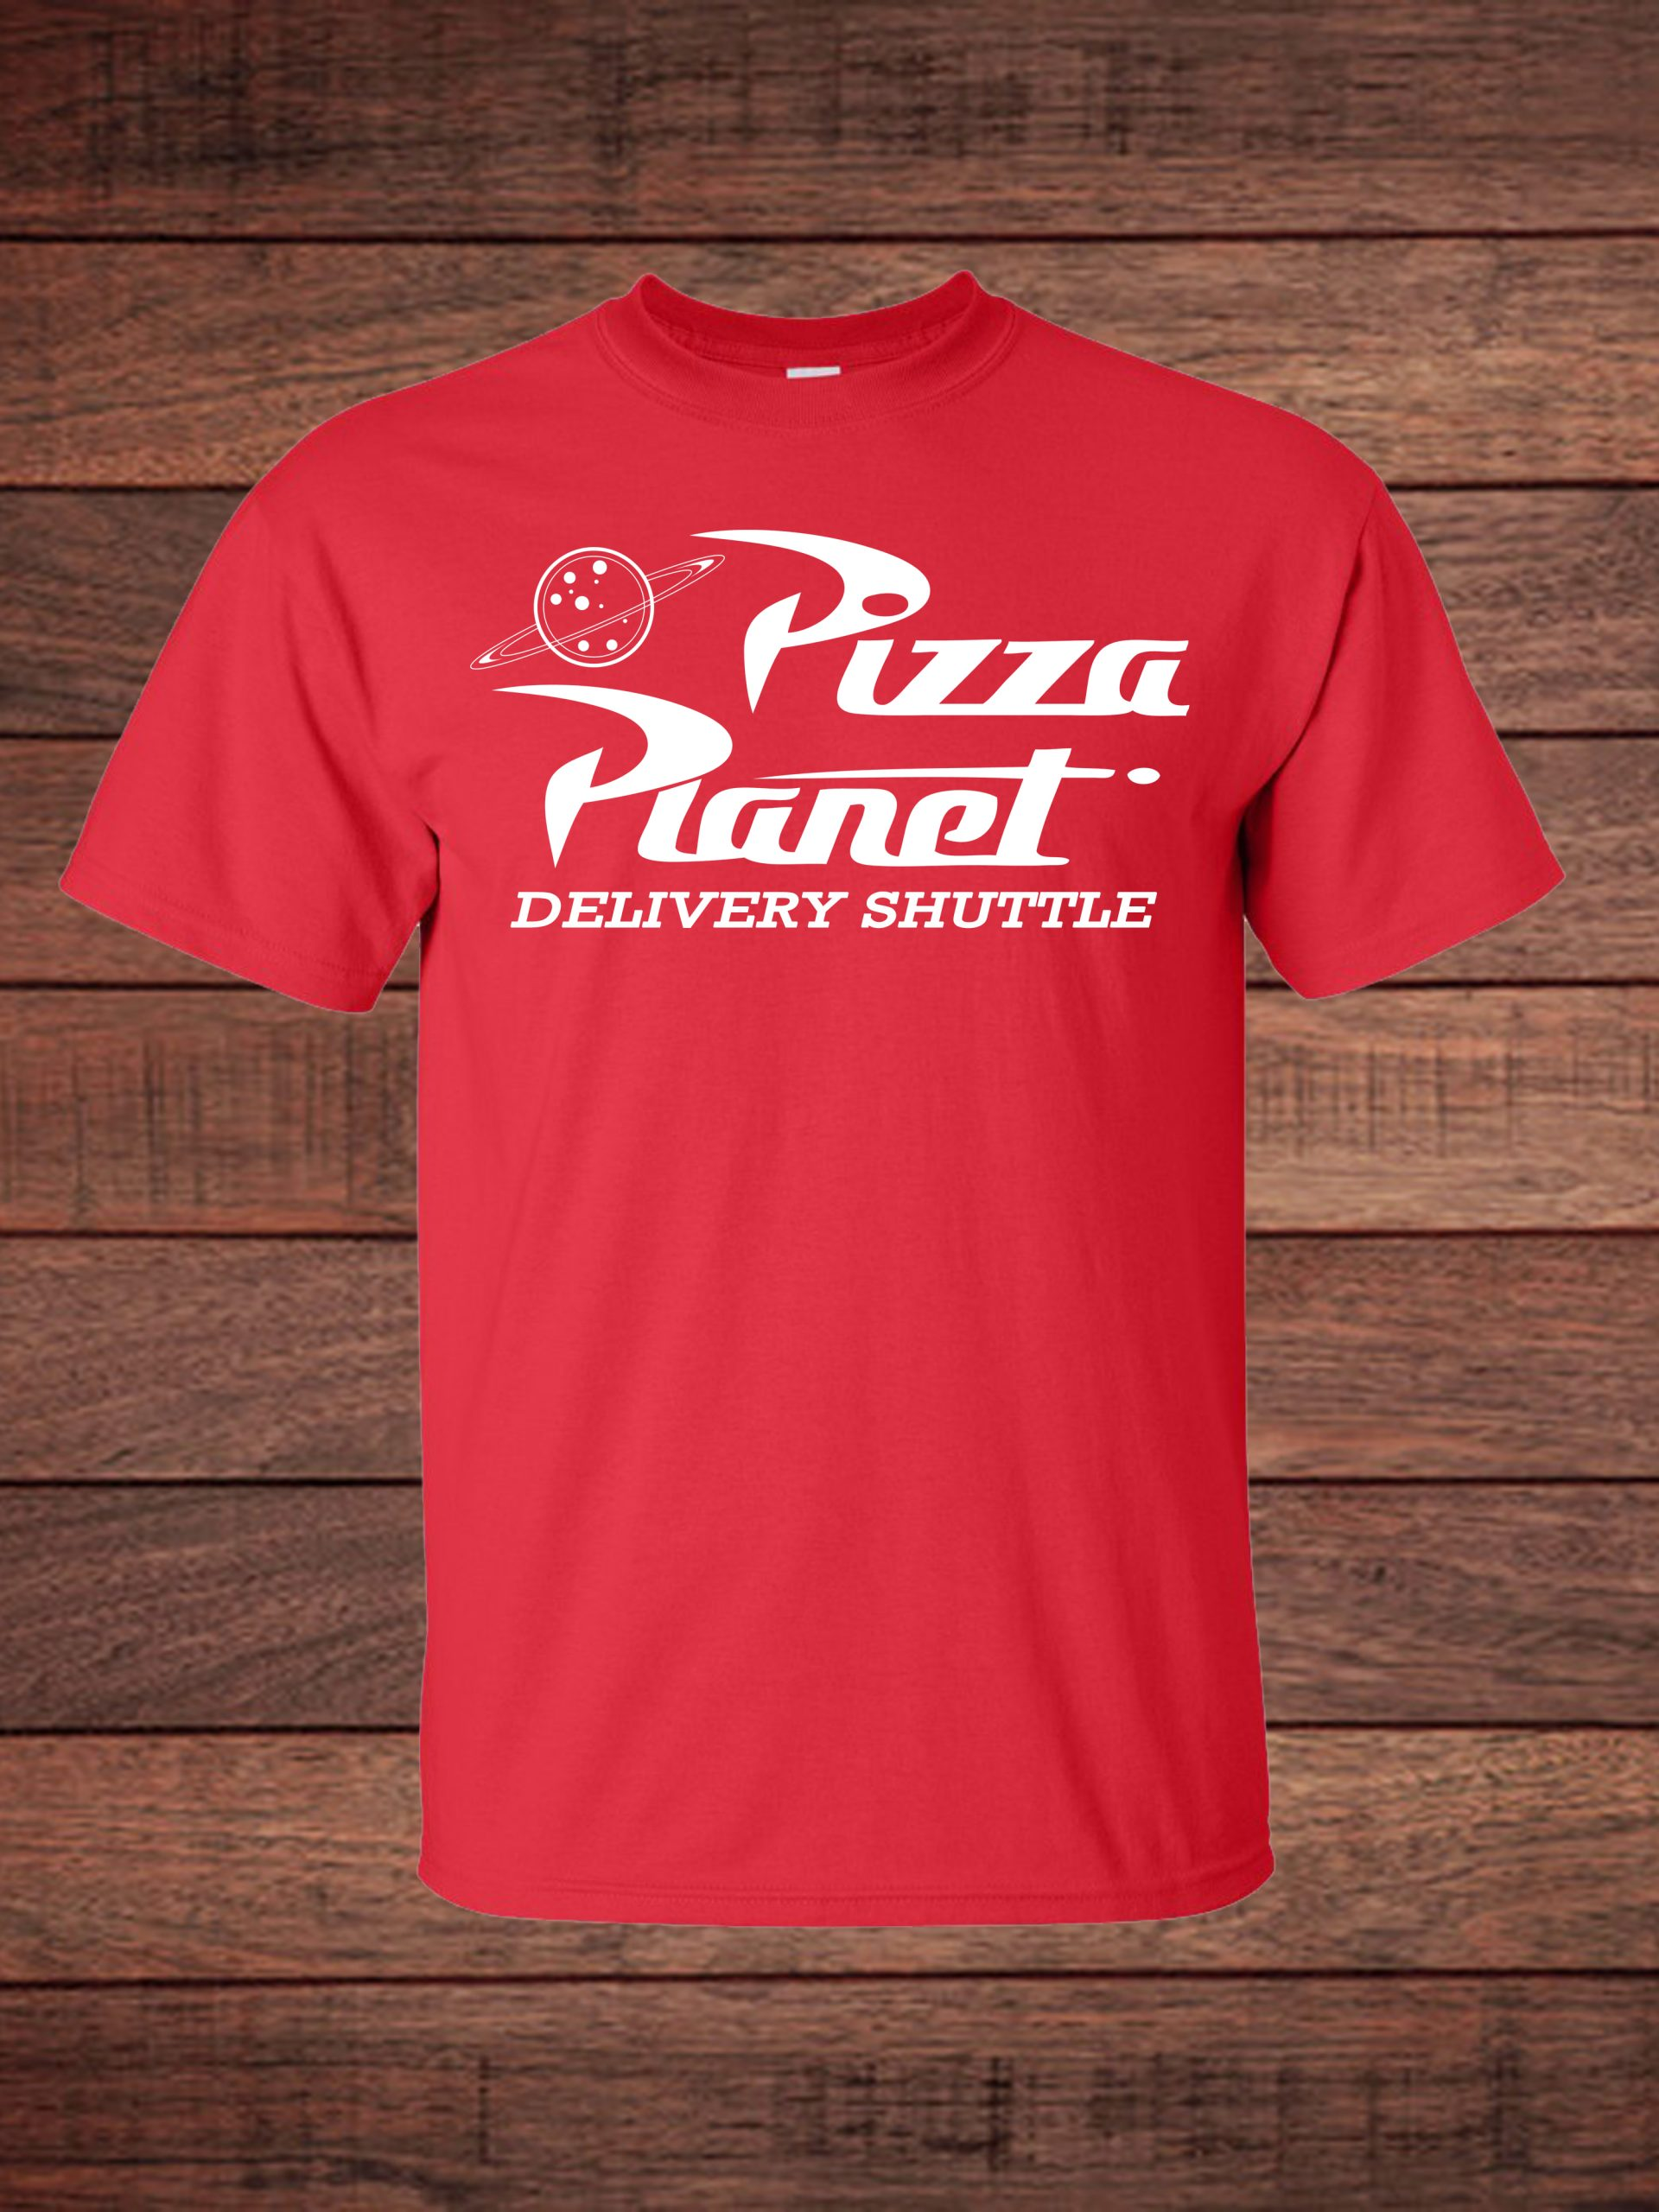 Pizza Planet - Delivery Shuttle